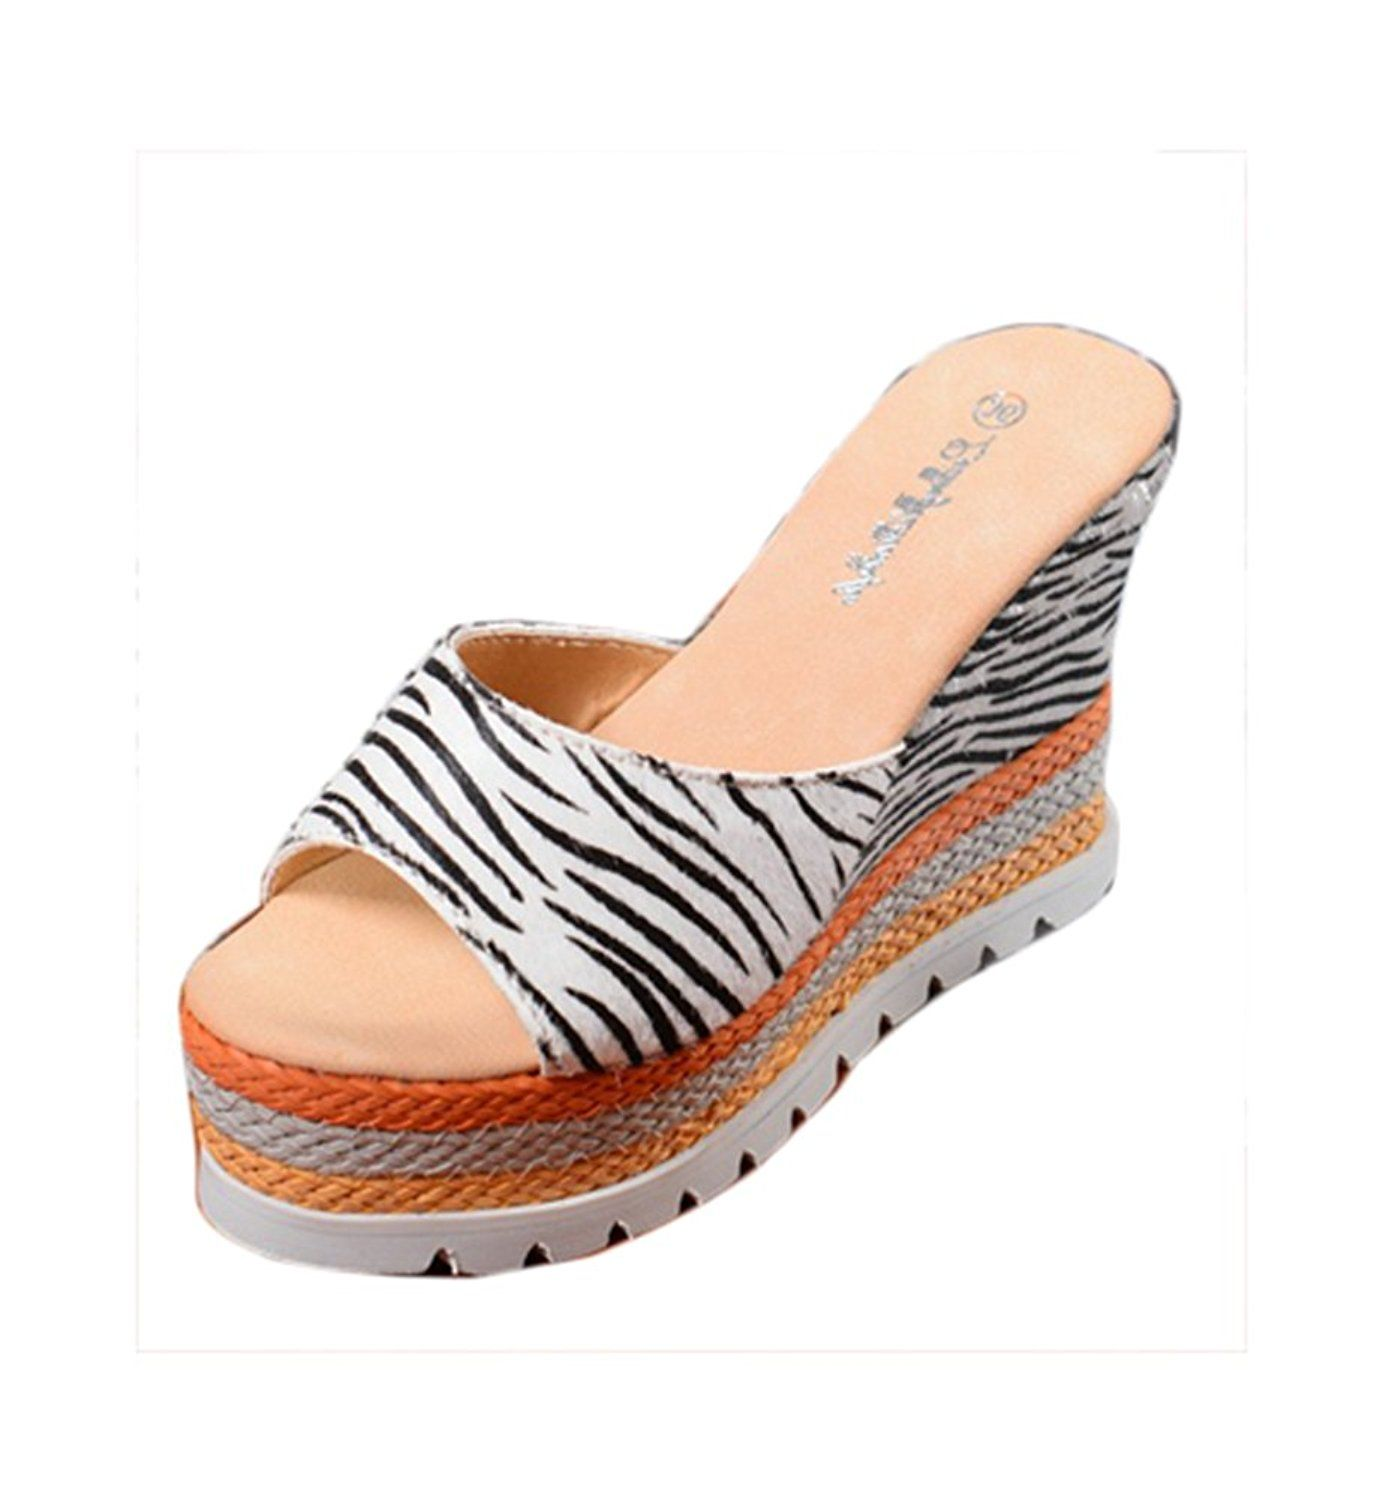 7f5034393ef712 Ubasics Women s Casual Slip on Beach Sandals    Check out this great image    Outdoor sandals